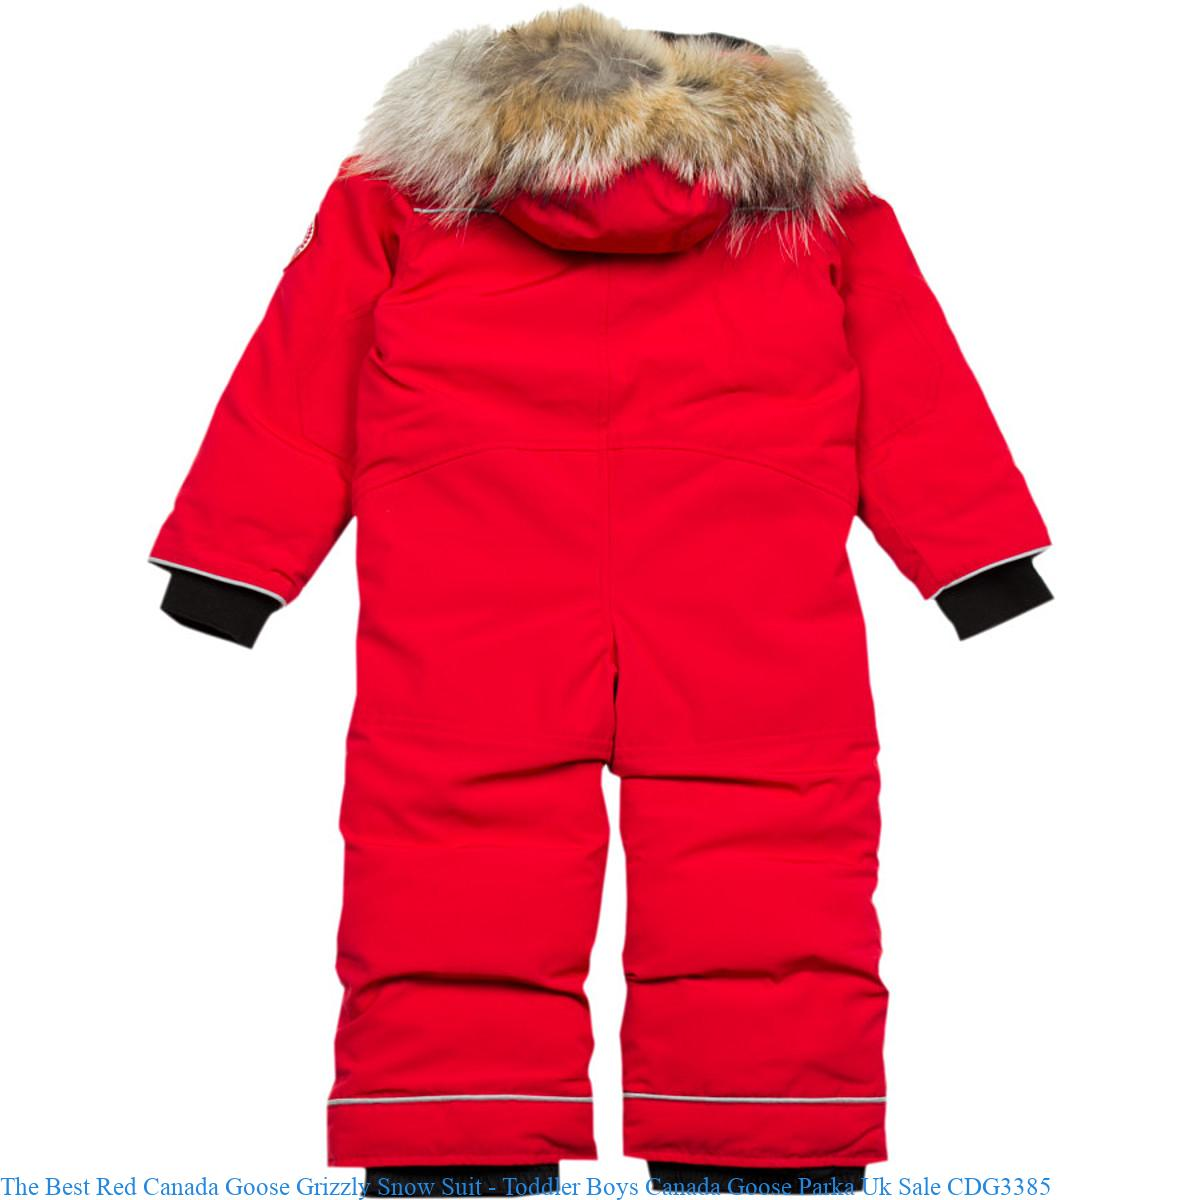 8fd7cf863 The Best Red Canada Goose Grizzly Snow Suit – Toddler Boys Canada Goose  Parka Uk Sale CDG3385 – Canada Goose Outlet Clearance Cheap Jackets Online  Sale